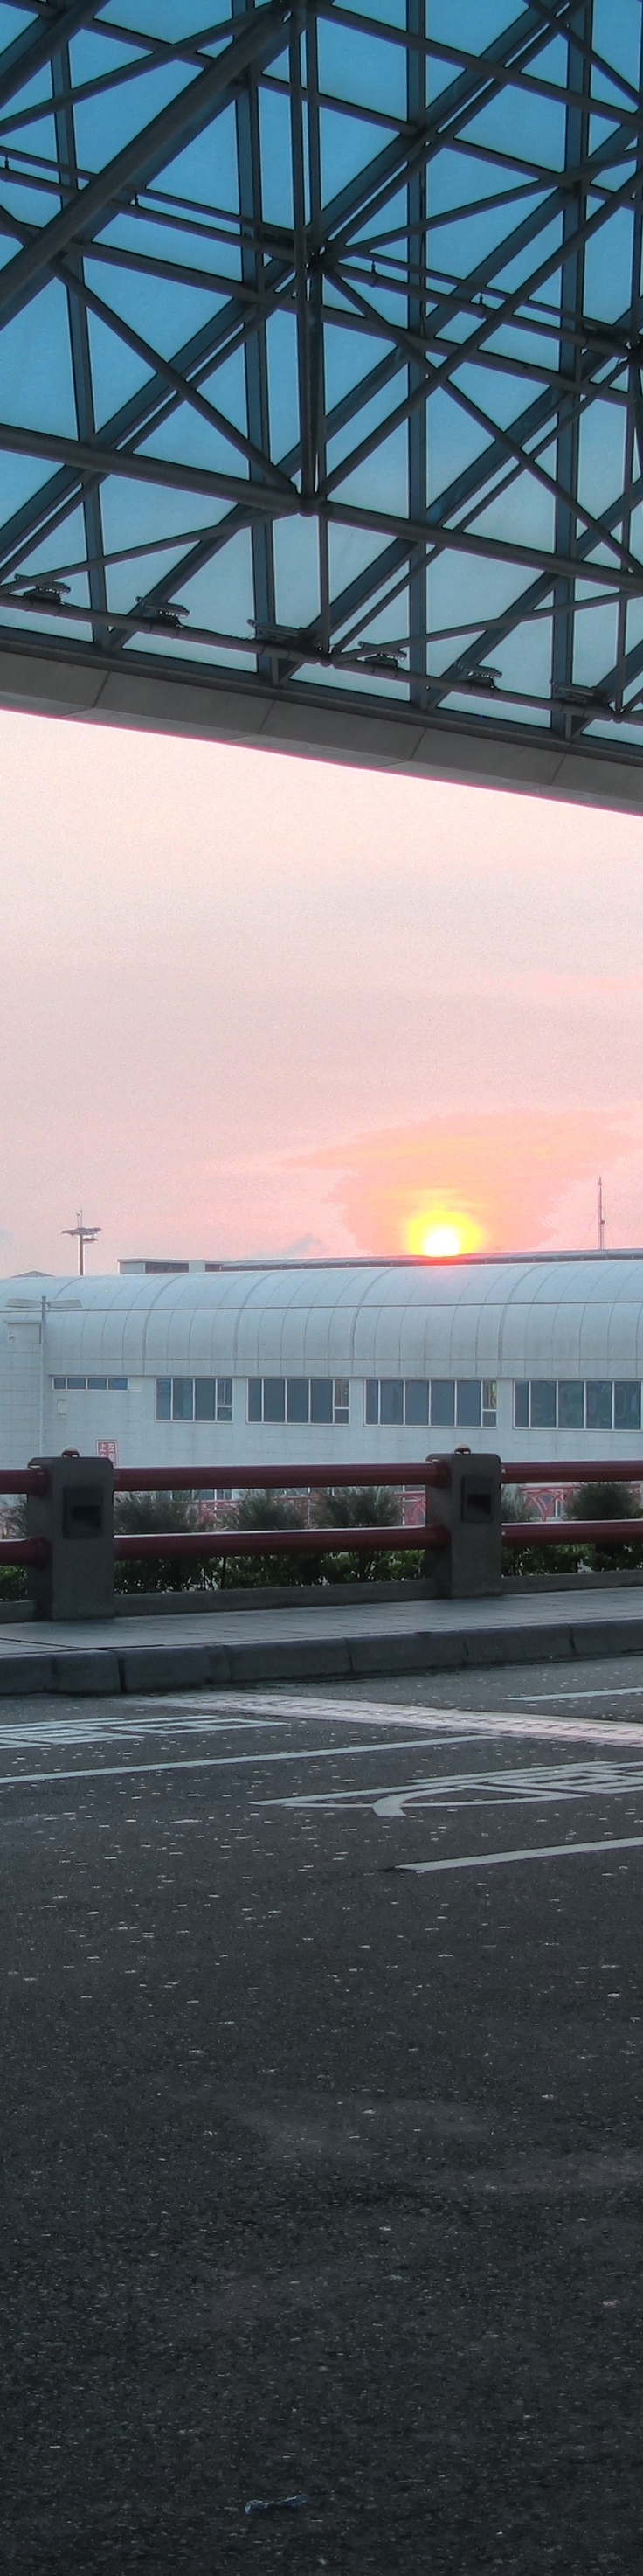 TPE—sunset from Terminal 2 of Taiwan Taoyuan International Airport, taken shortly before boarding our flight back to Hong Kong.